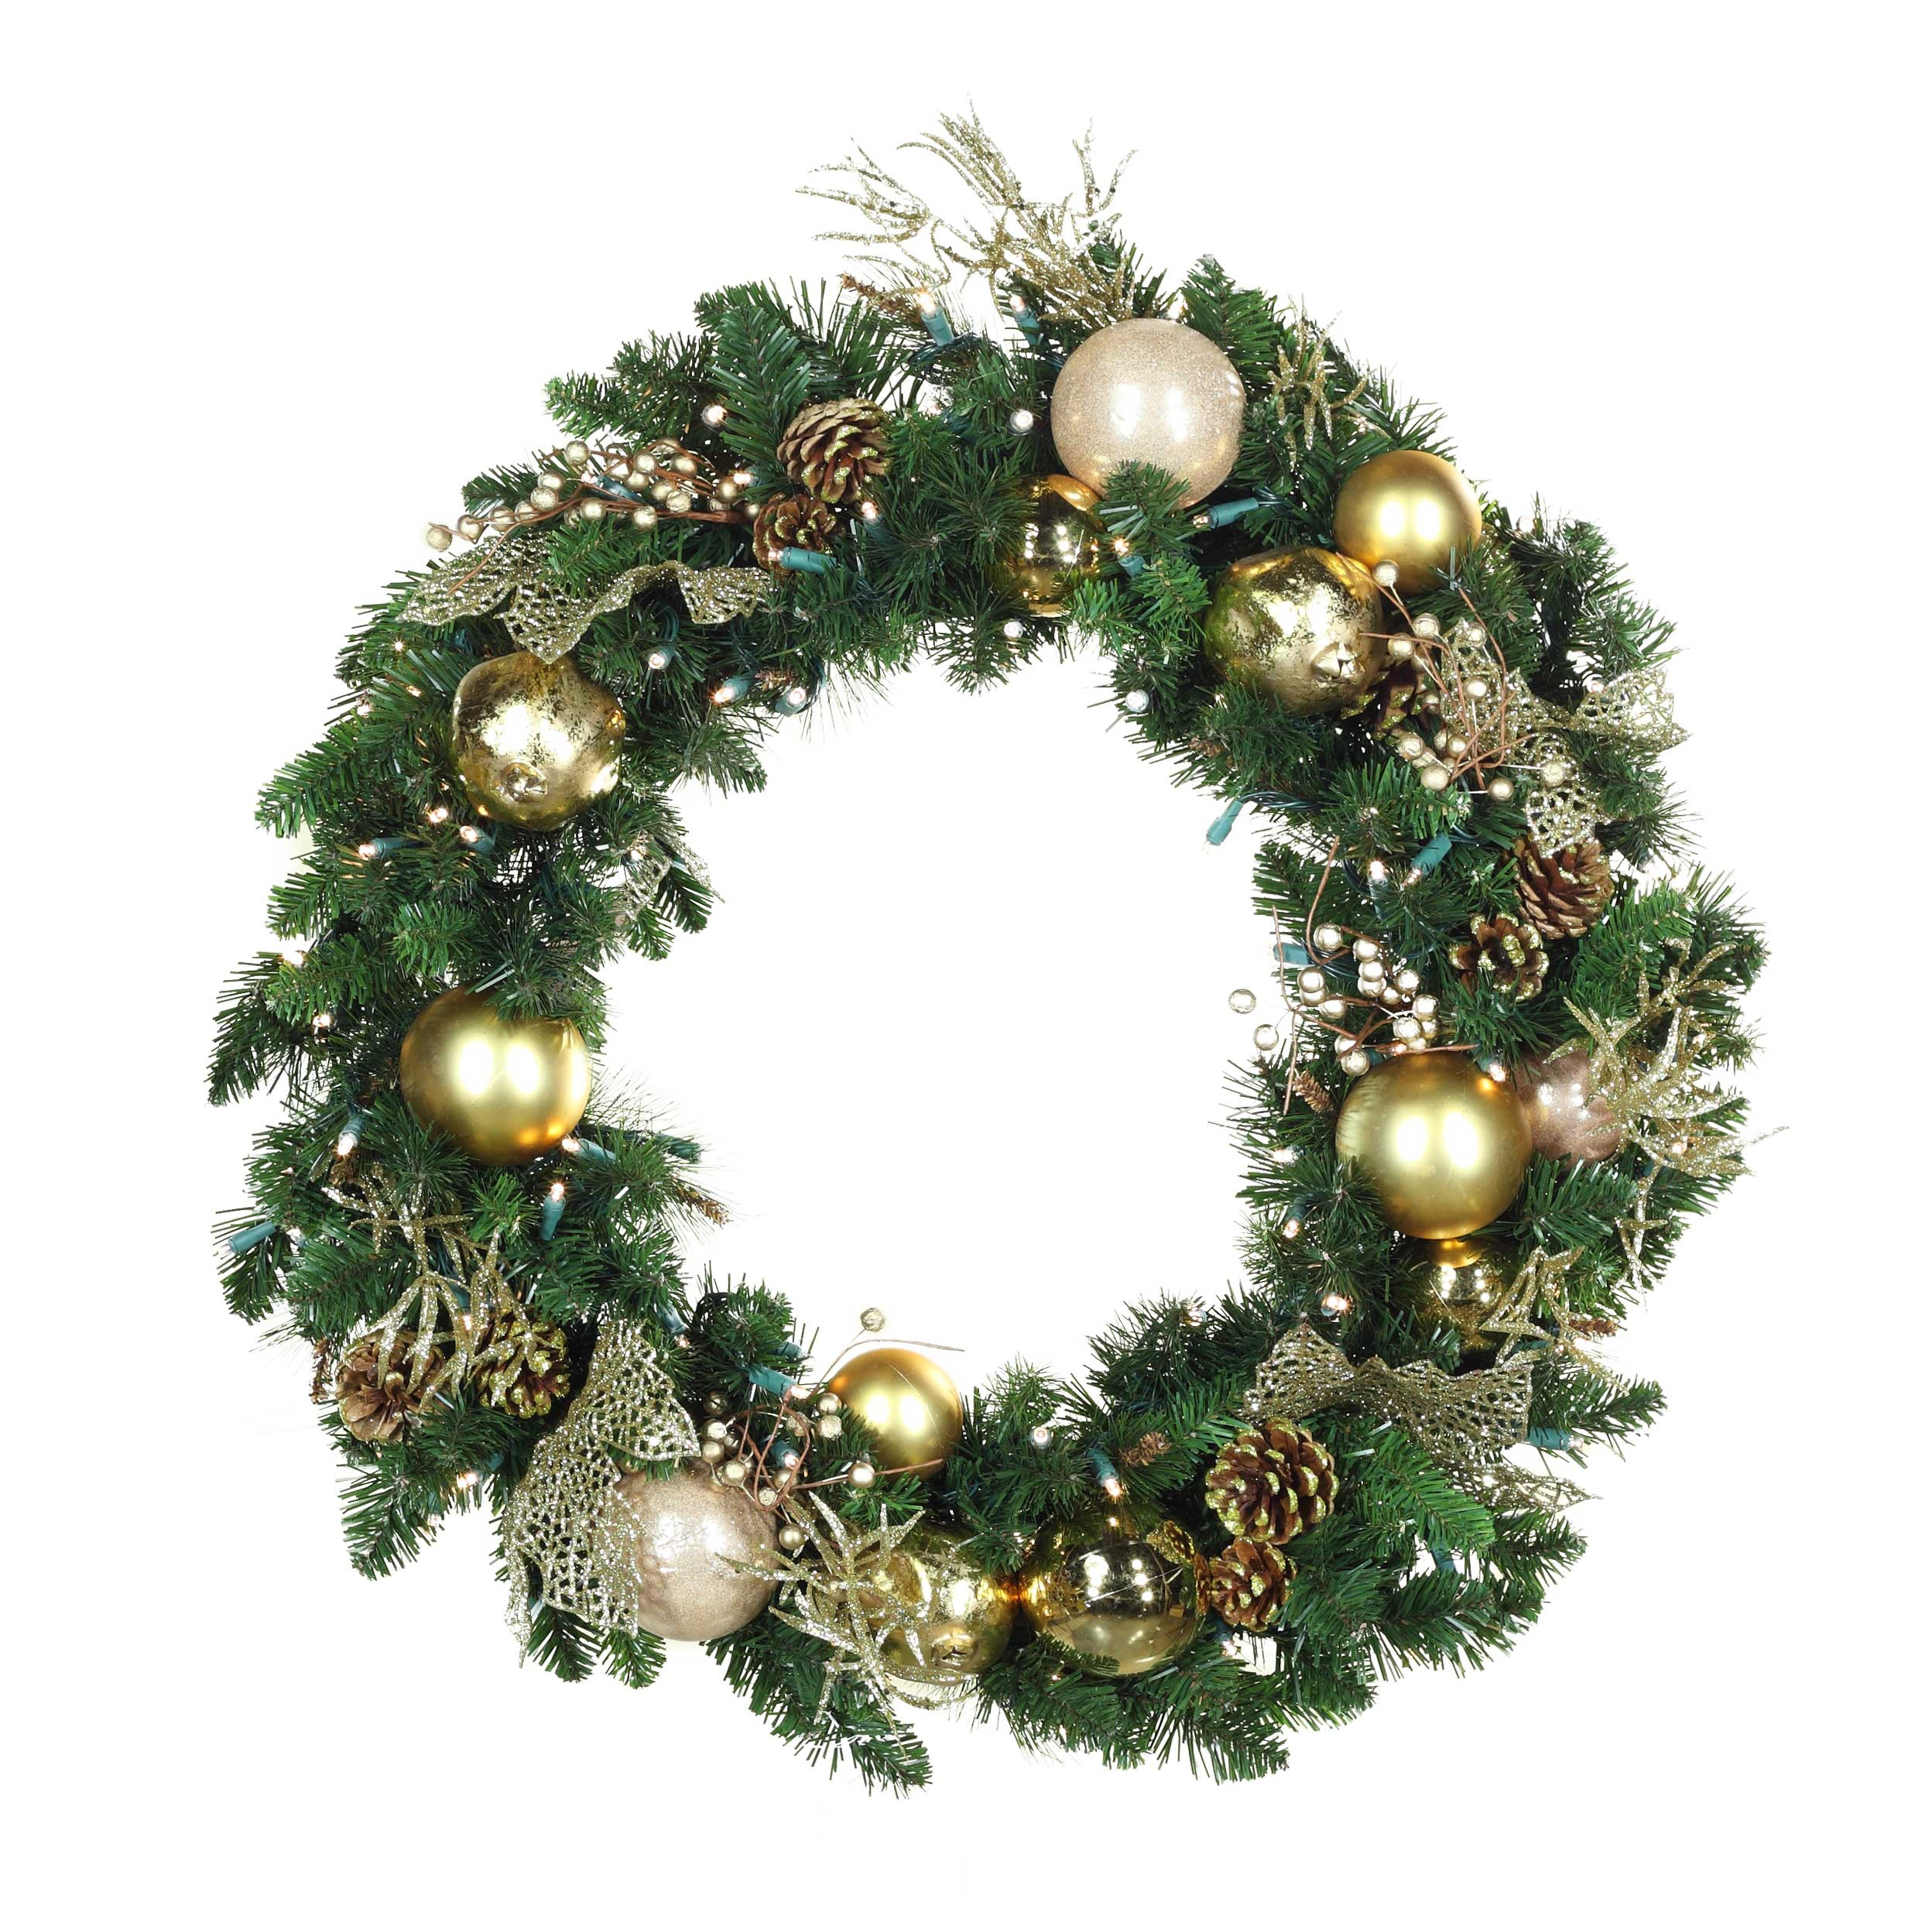 decorative wreaths royal gold battery operated led wreath warm white lights - Battery Powered Christmas Decorations